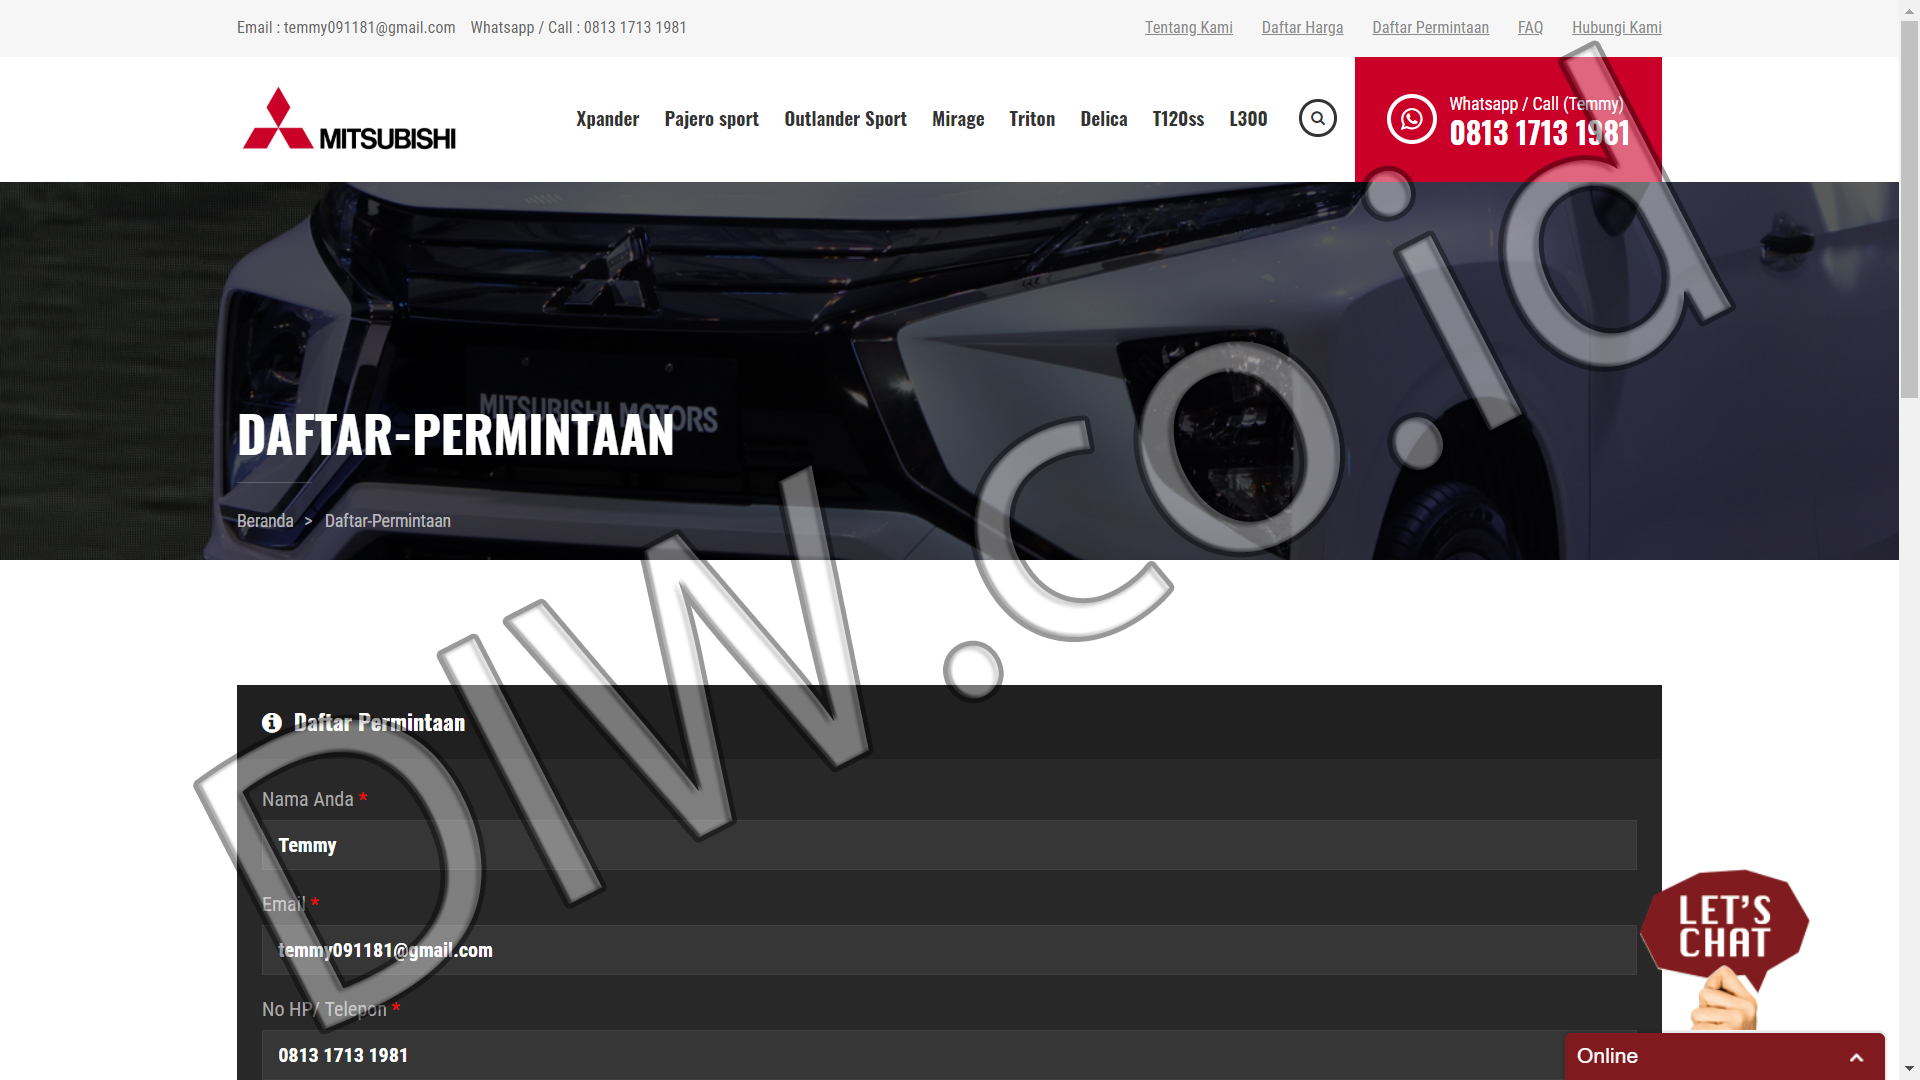 Portfolio 3 - Dealer Mitsubishi Jakarta Barat - Andri Sunardi - Freelancer - Web Developer - CEO DIW.co.id